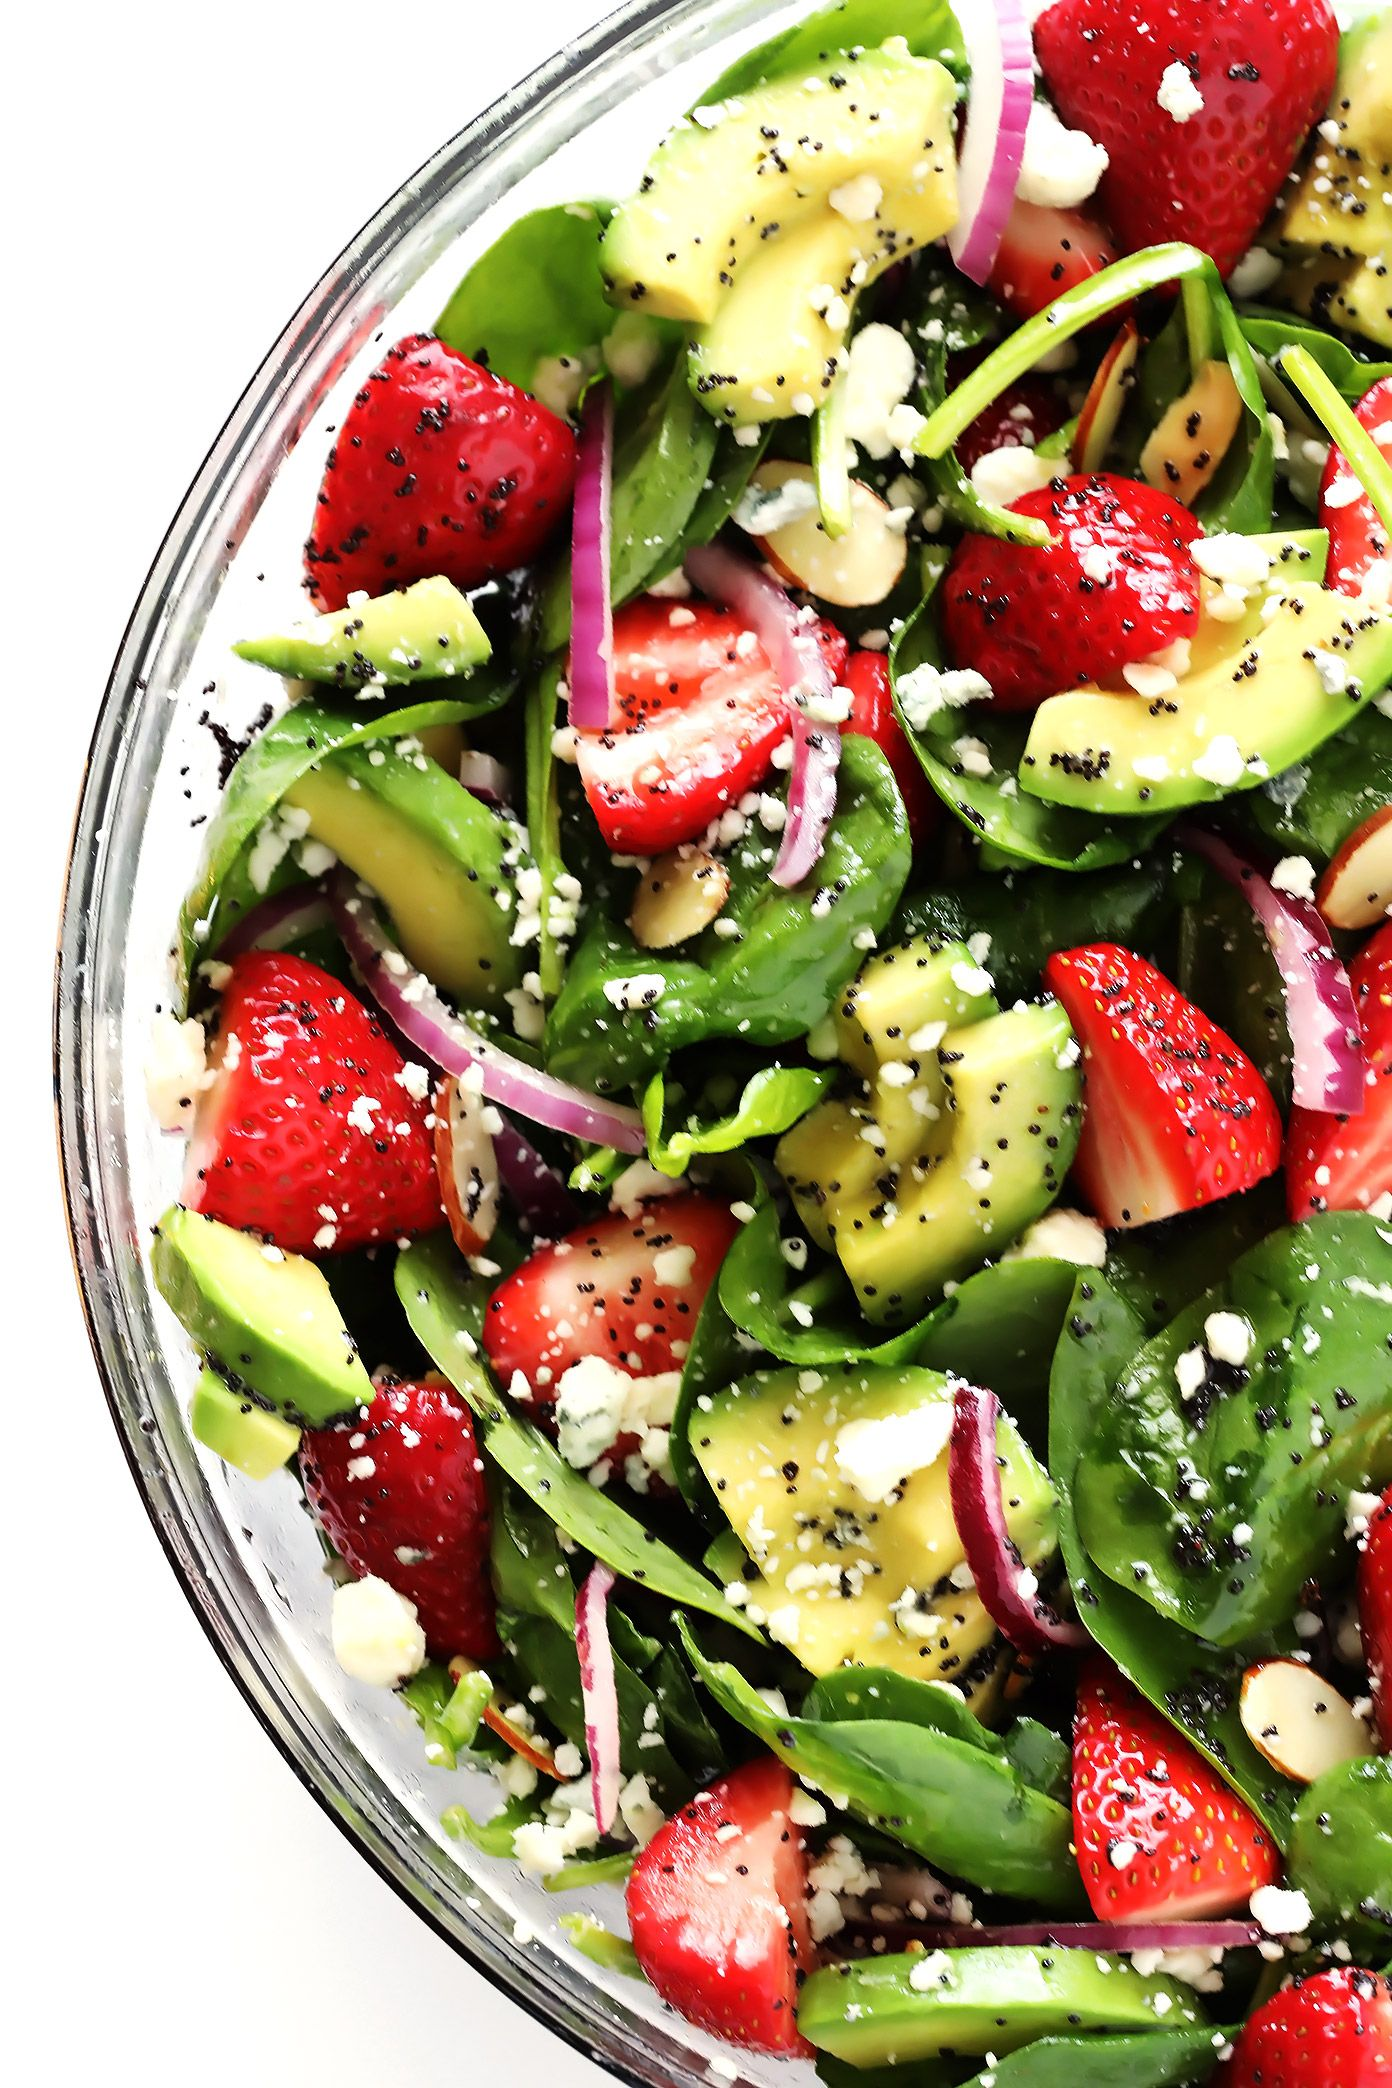 Photo of Avocado Strawberry Spinach Salad with Poppyseed Vinaigrette Recipe